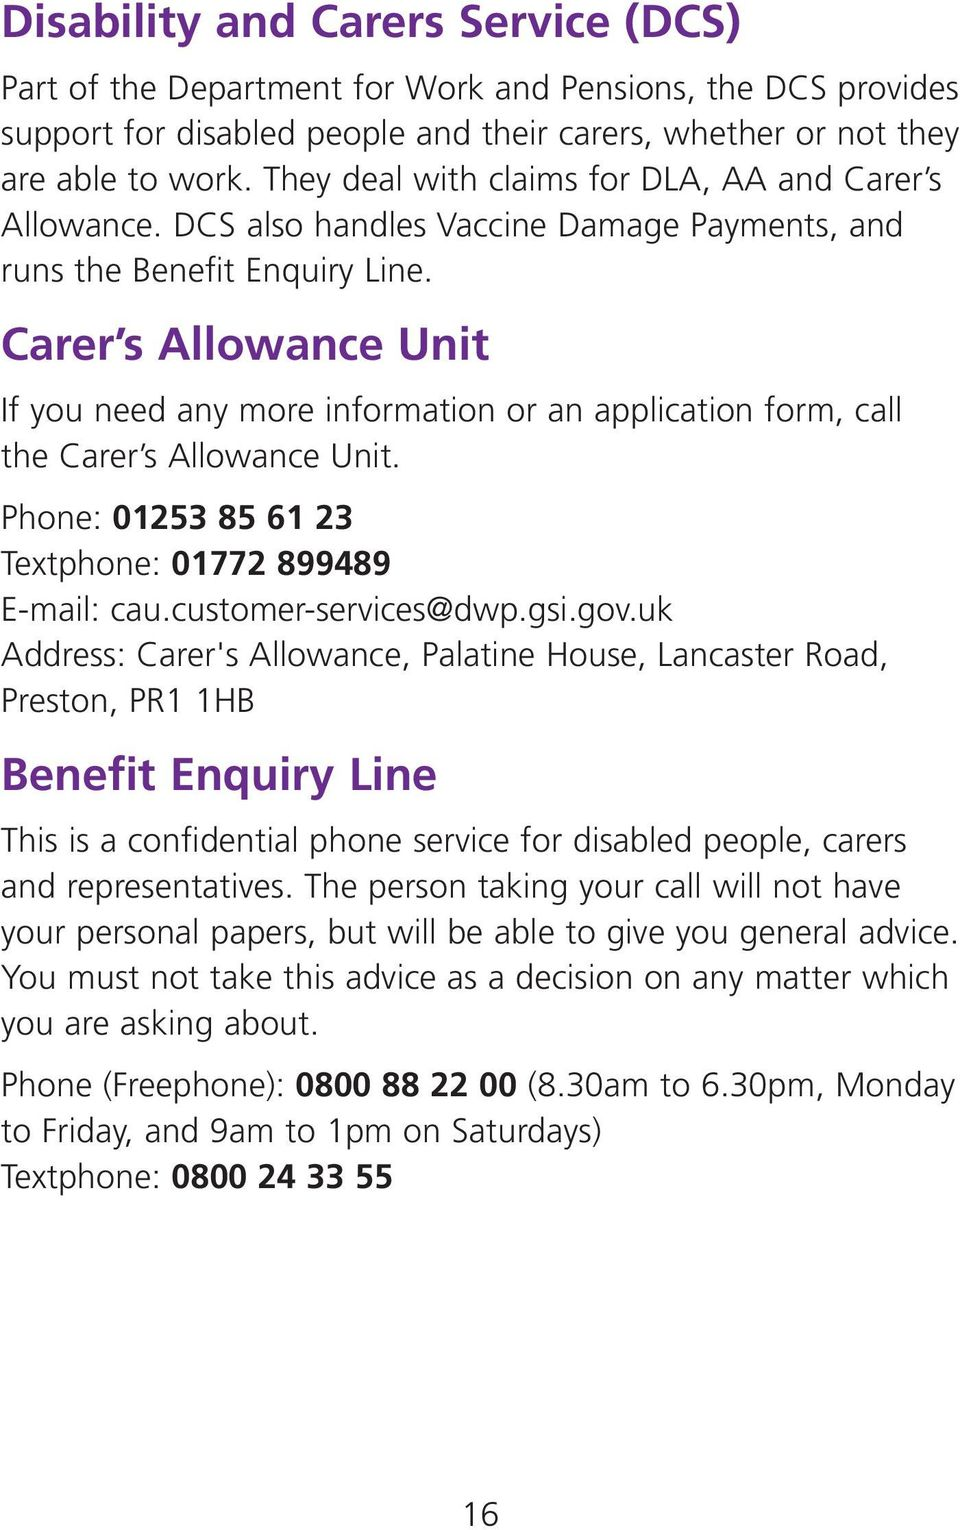 Carer s Allowance Unit If you need any more information or an application form, call the Carer s Allowance Unit. Phone: 01253 85 61 23 Textphone: 01772 899489 E-mail: cau.customer-services@dwp.gsi.